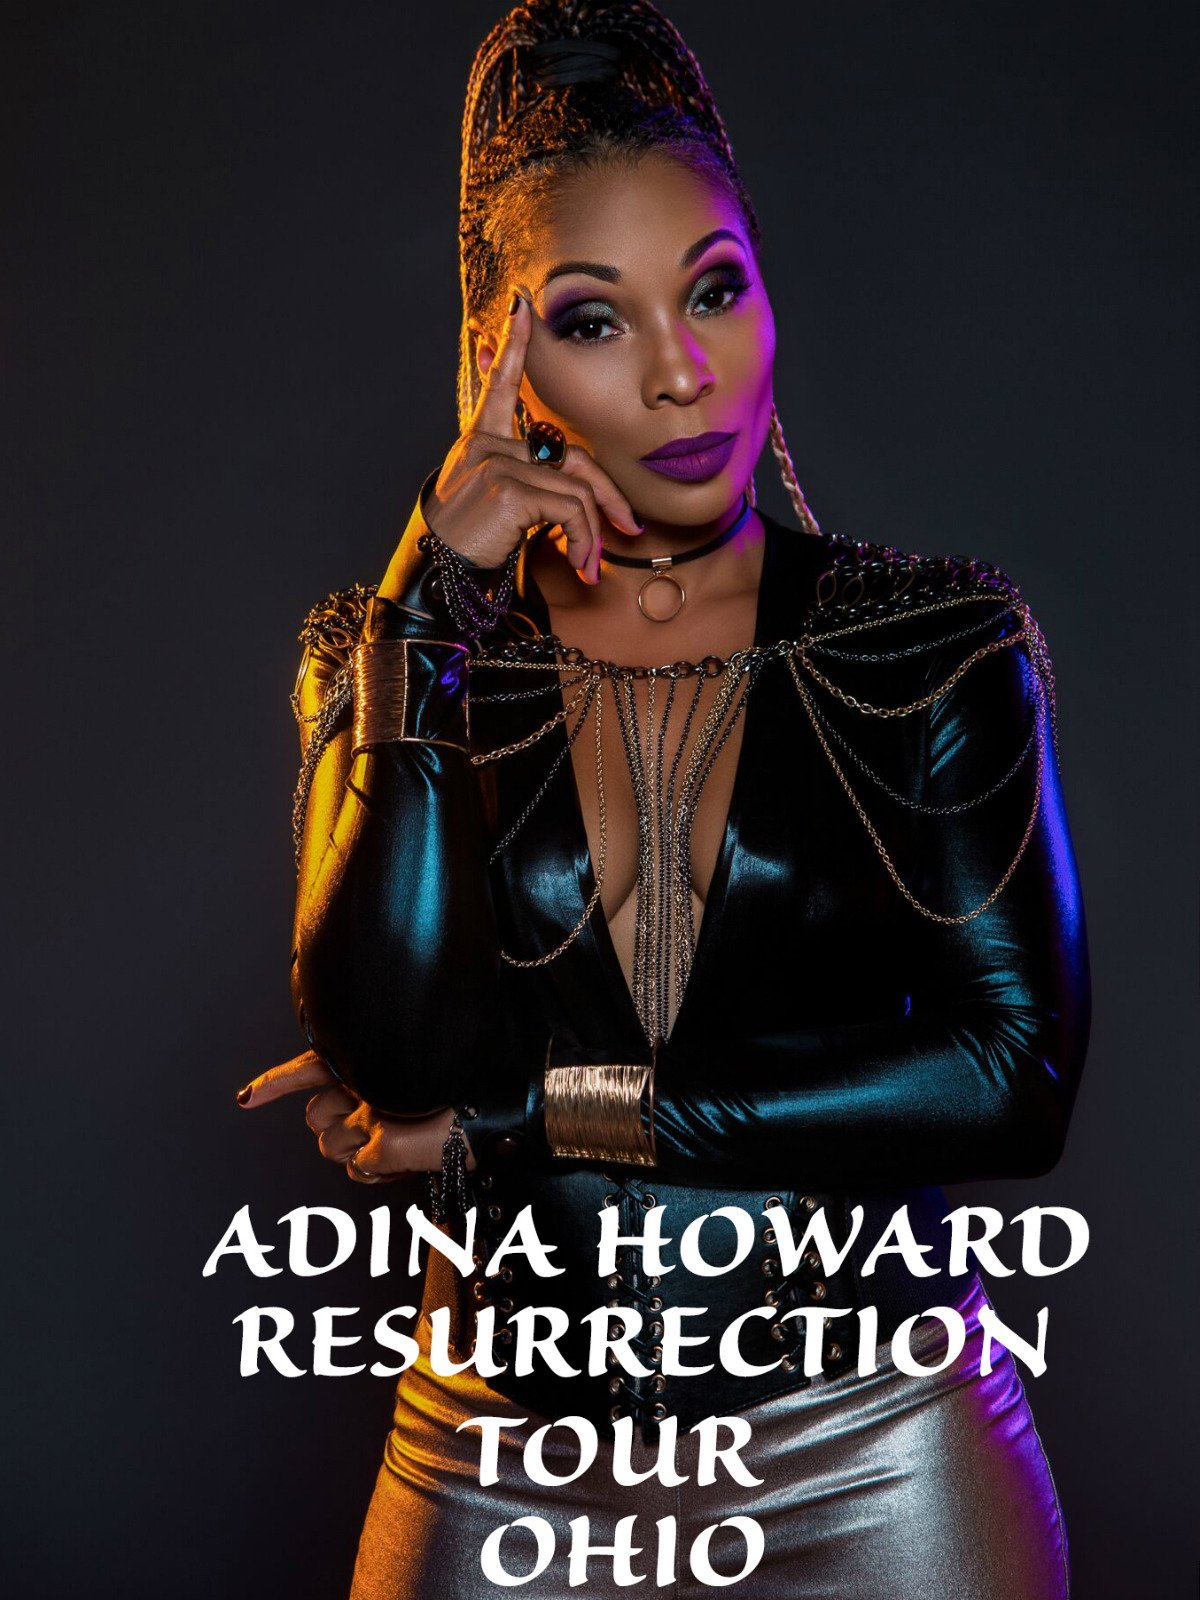 Adina Howard Resurrection Tour Ohio